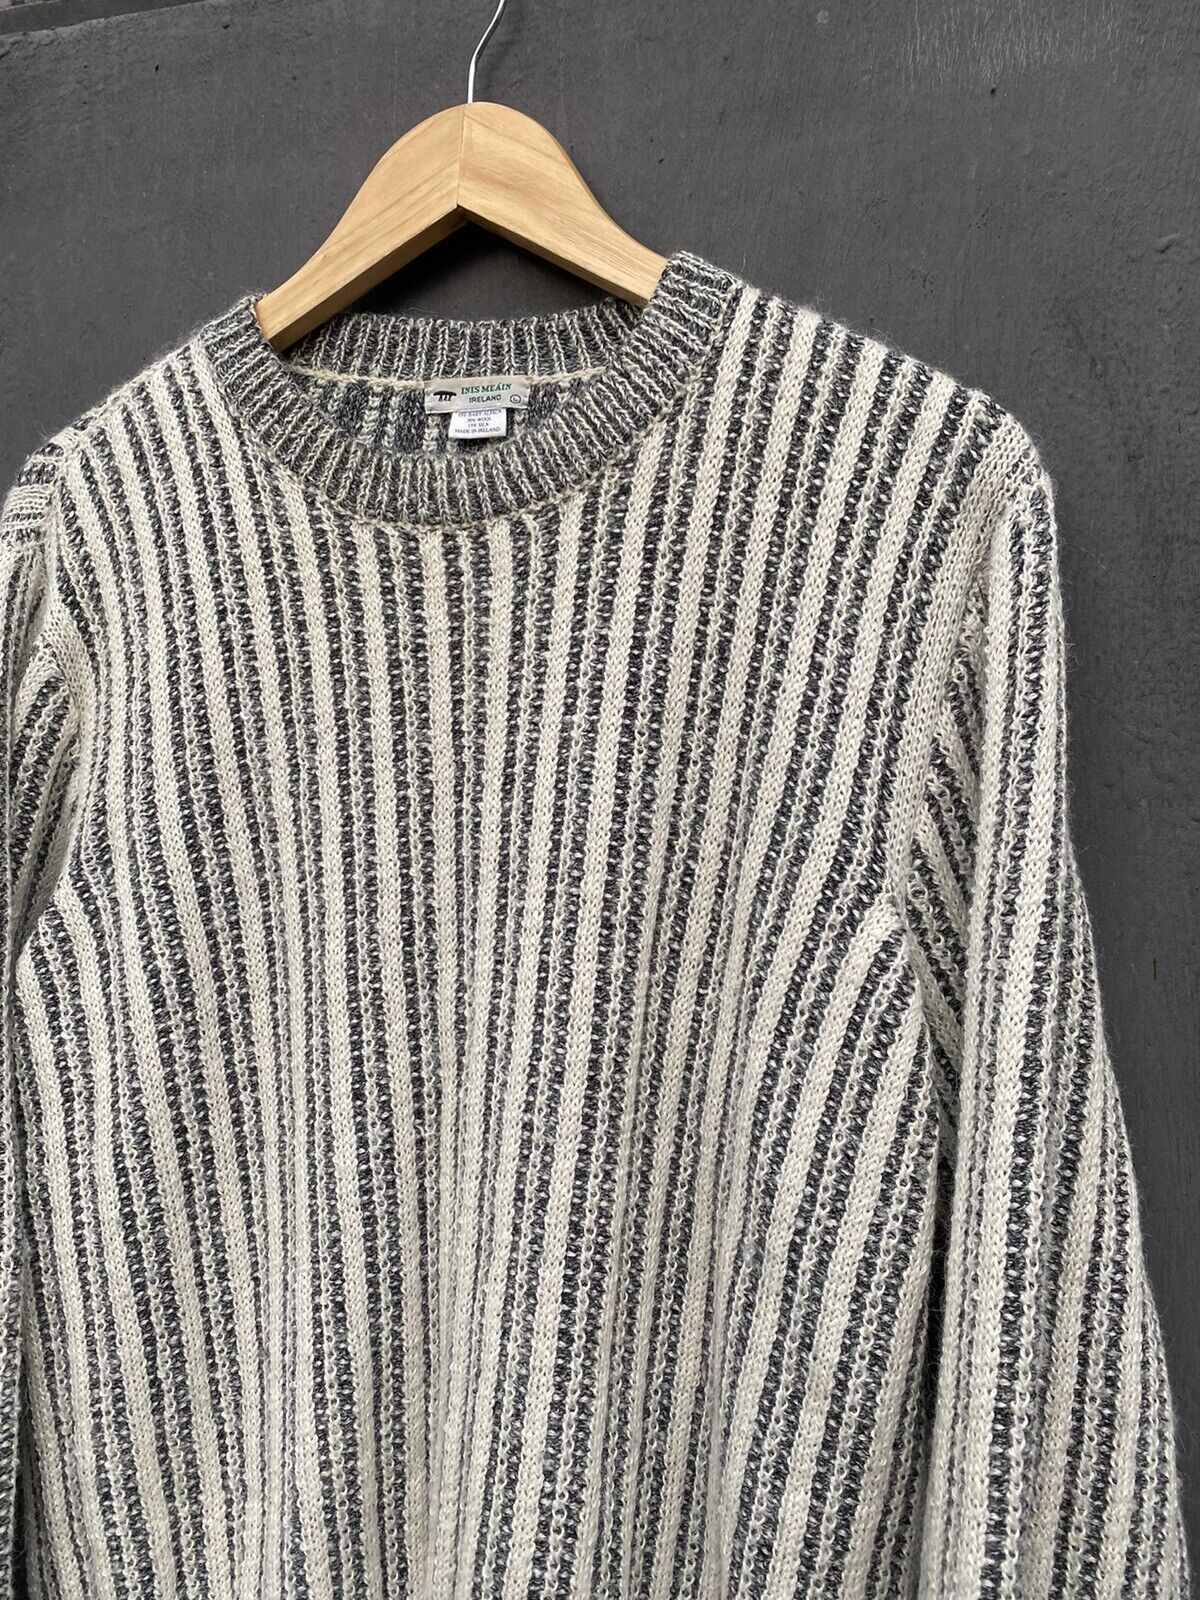 Inis Meain striped alpaca sweater size L - image 2